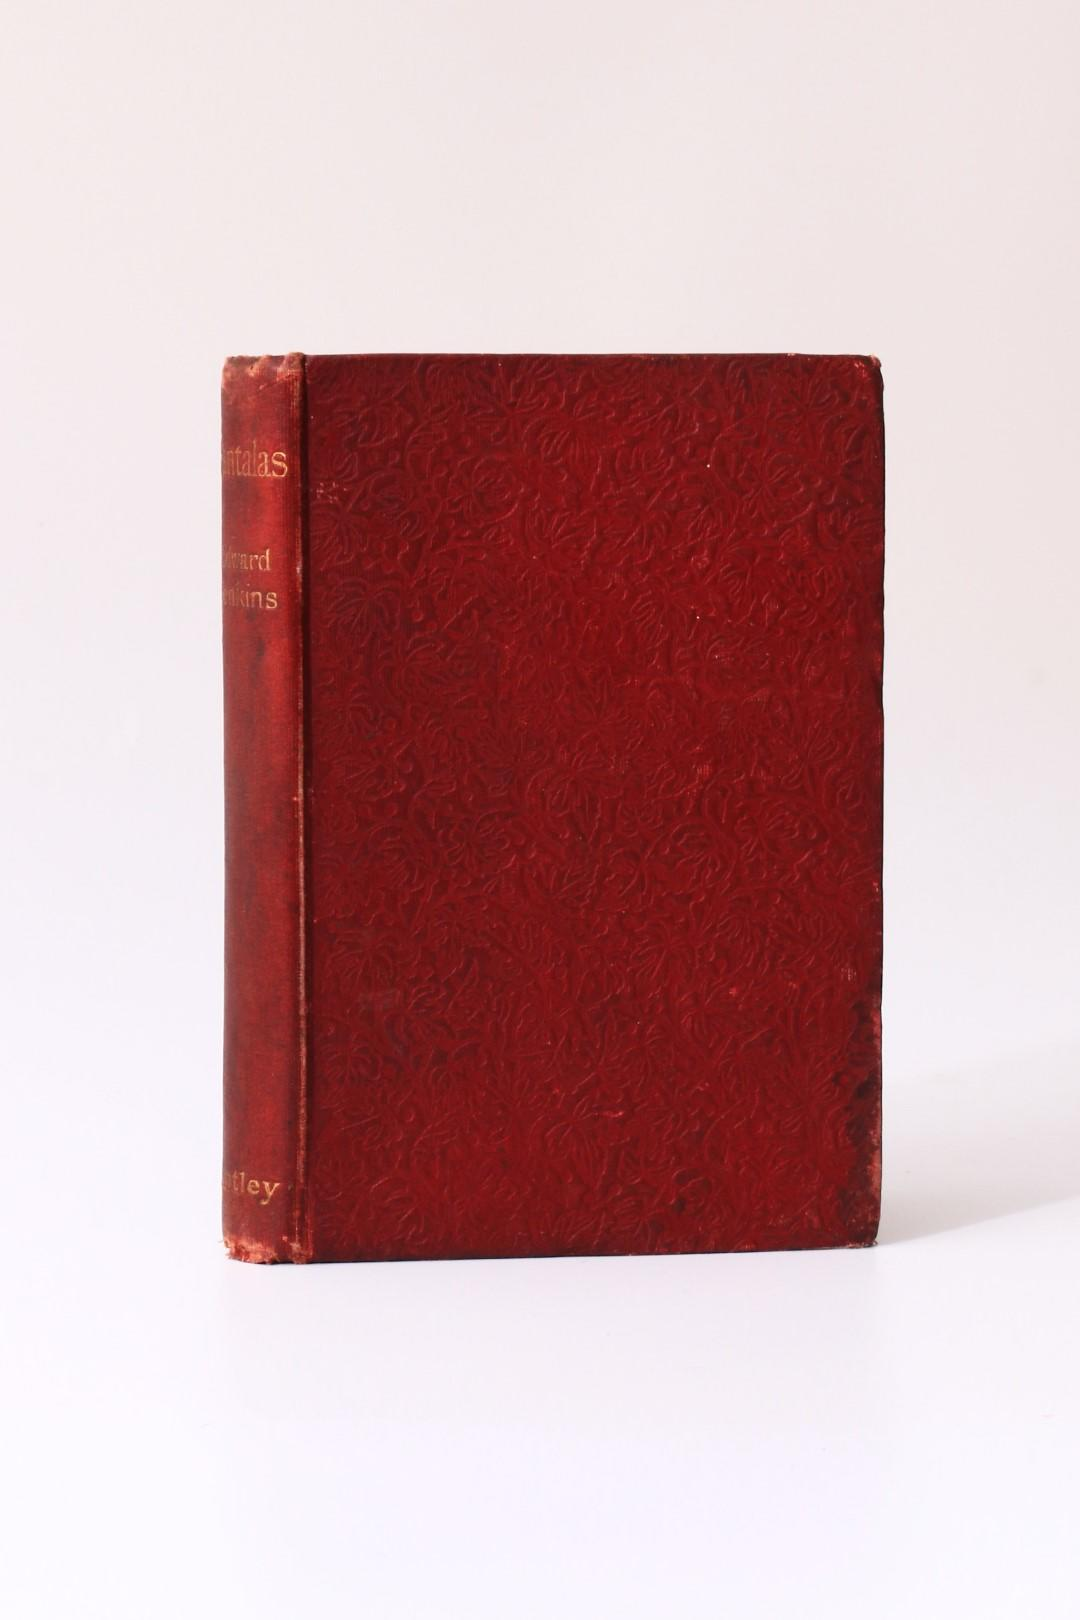 Edward Jenkins - Pantalas - Richard Bentley, 1897, First Edition.